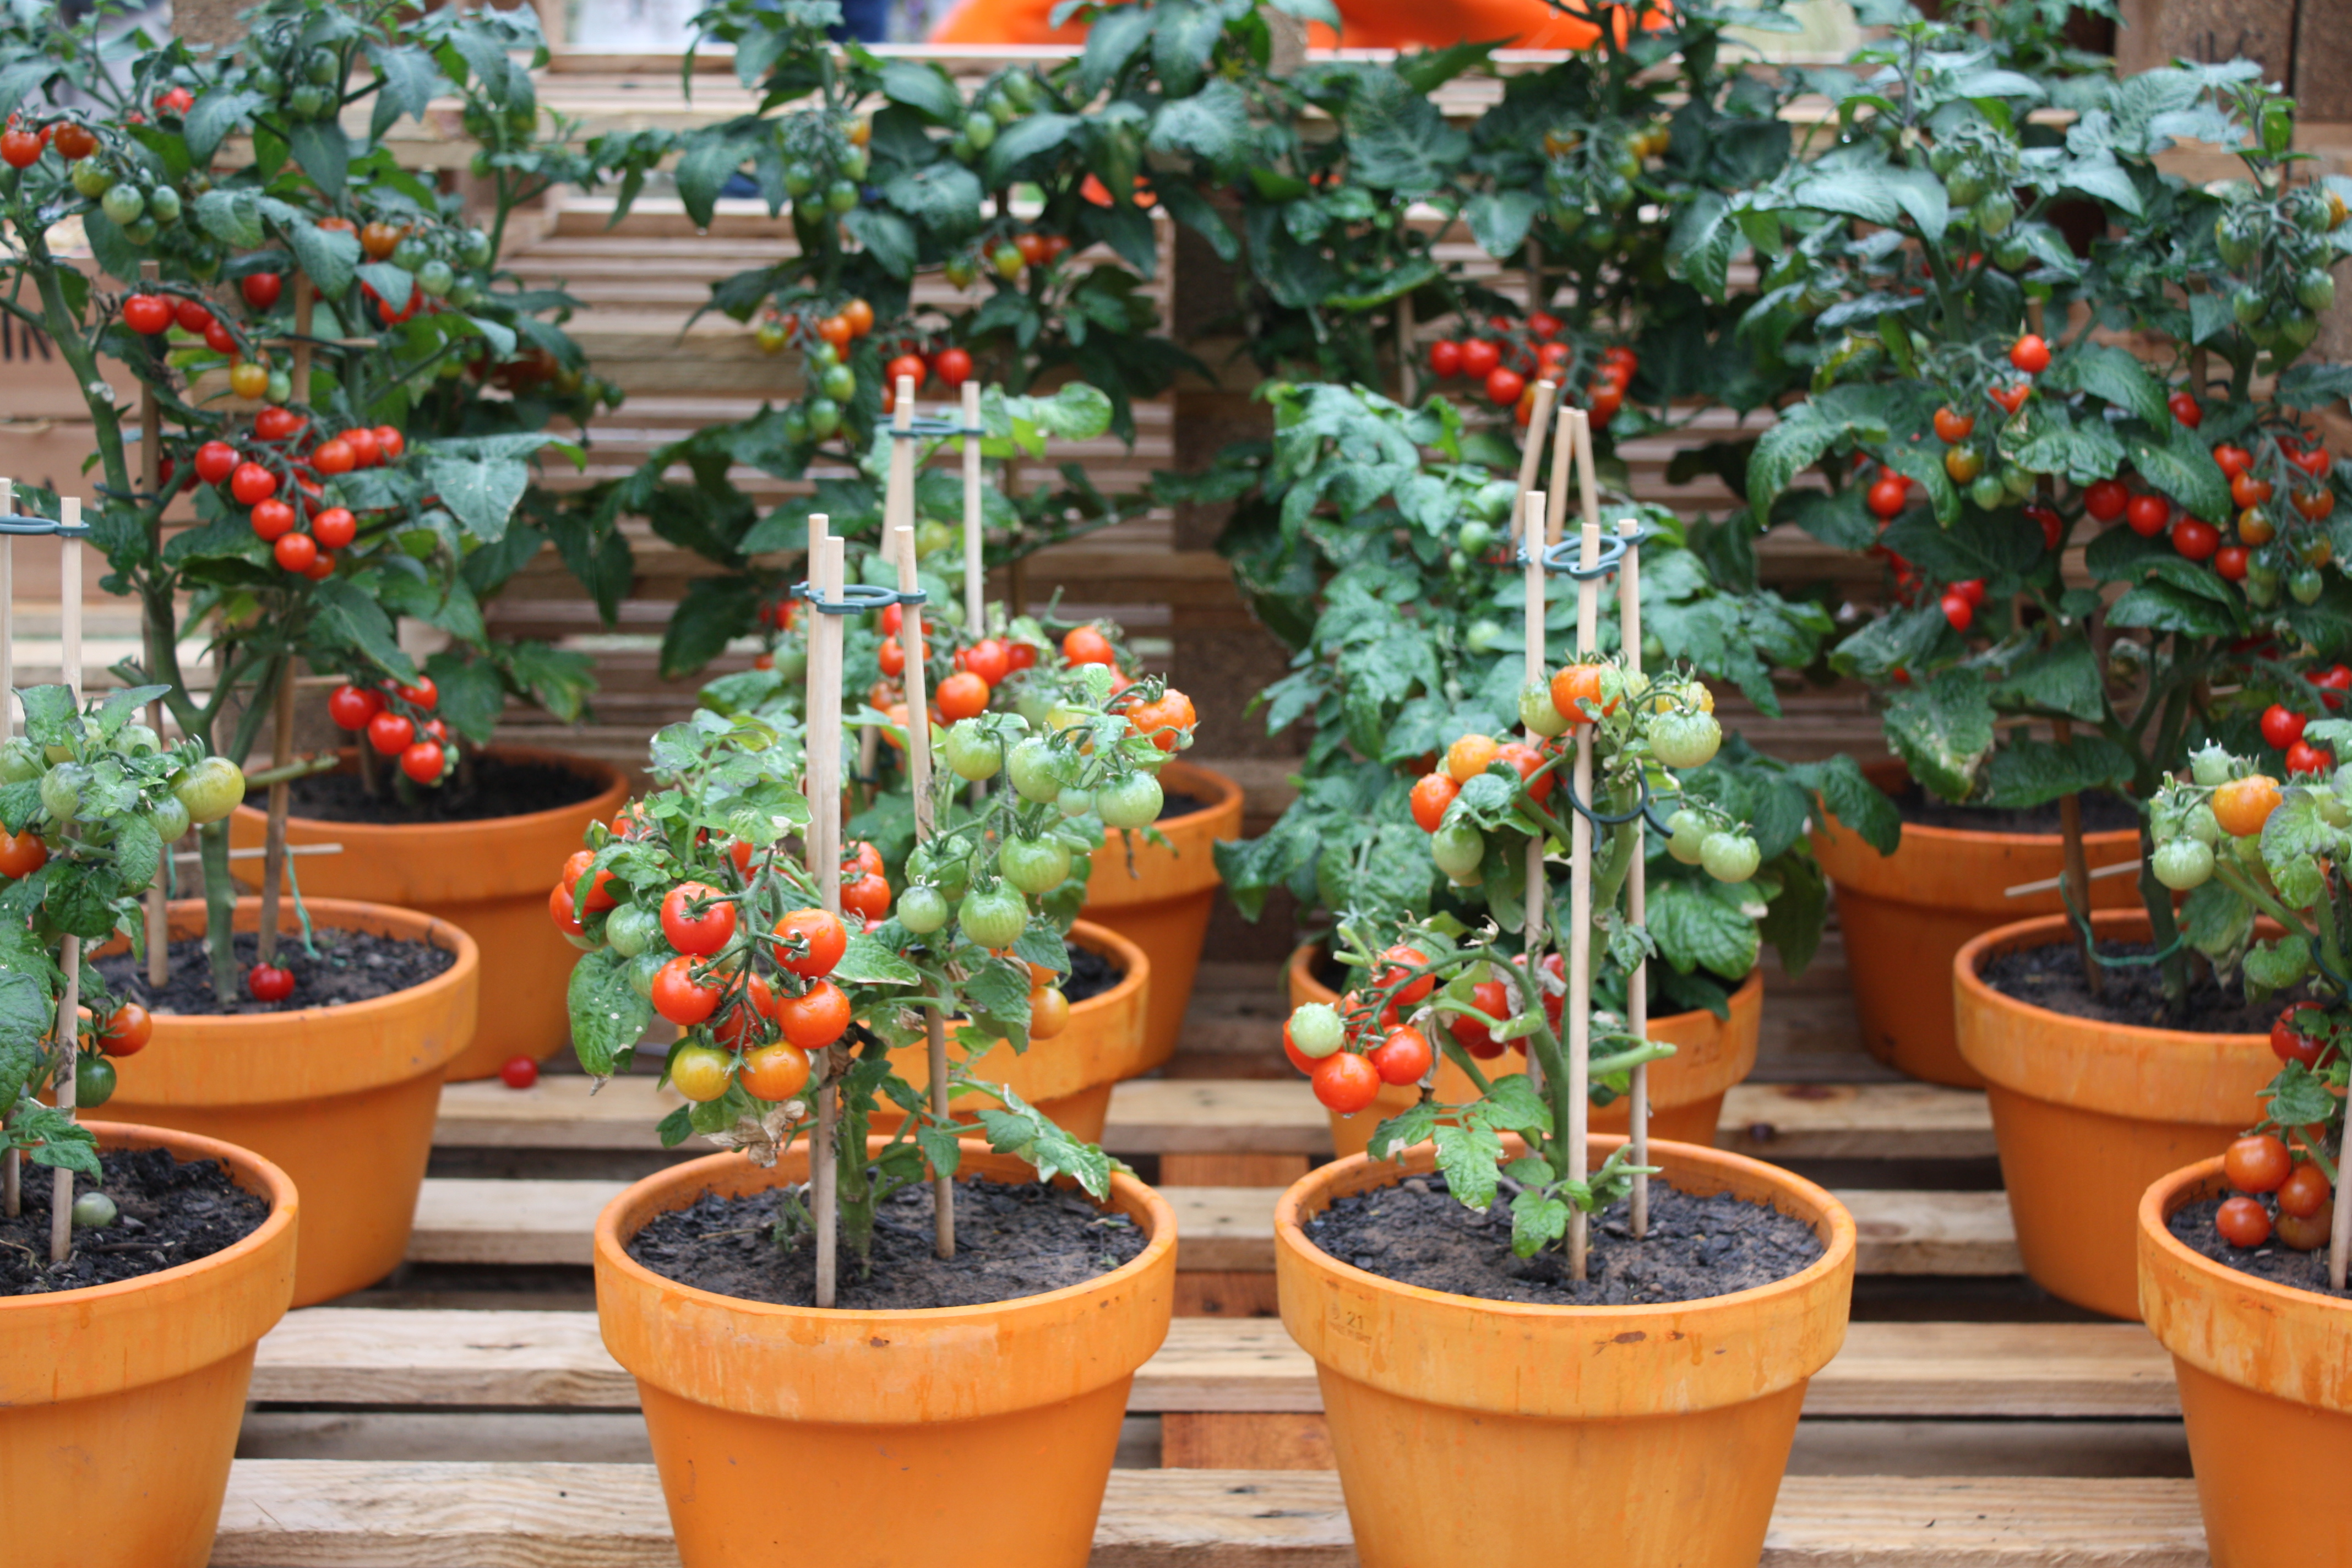 Growing cherry tomatoes in pots - My New Found Interest In Vegetable Growing Was Piqued By These Pot Grown Cherry Tomatoes